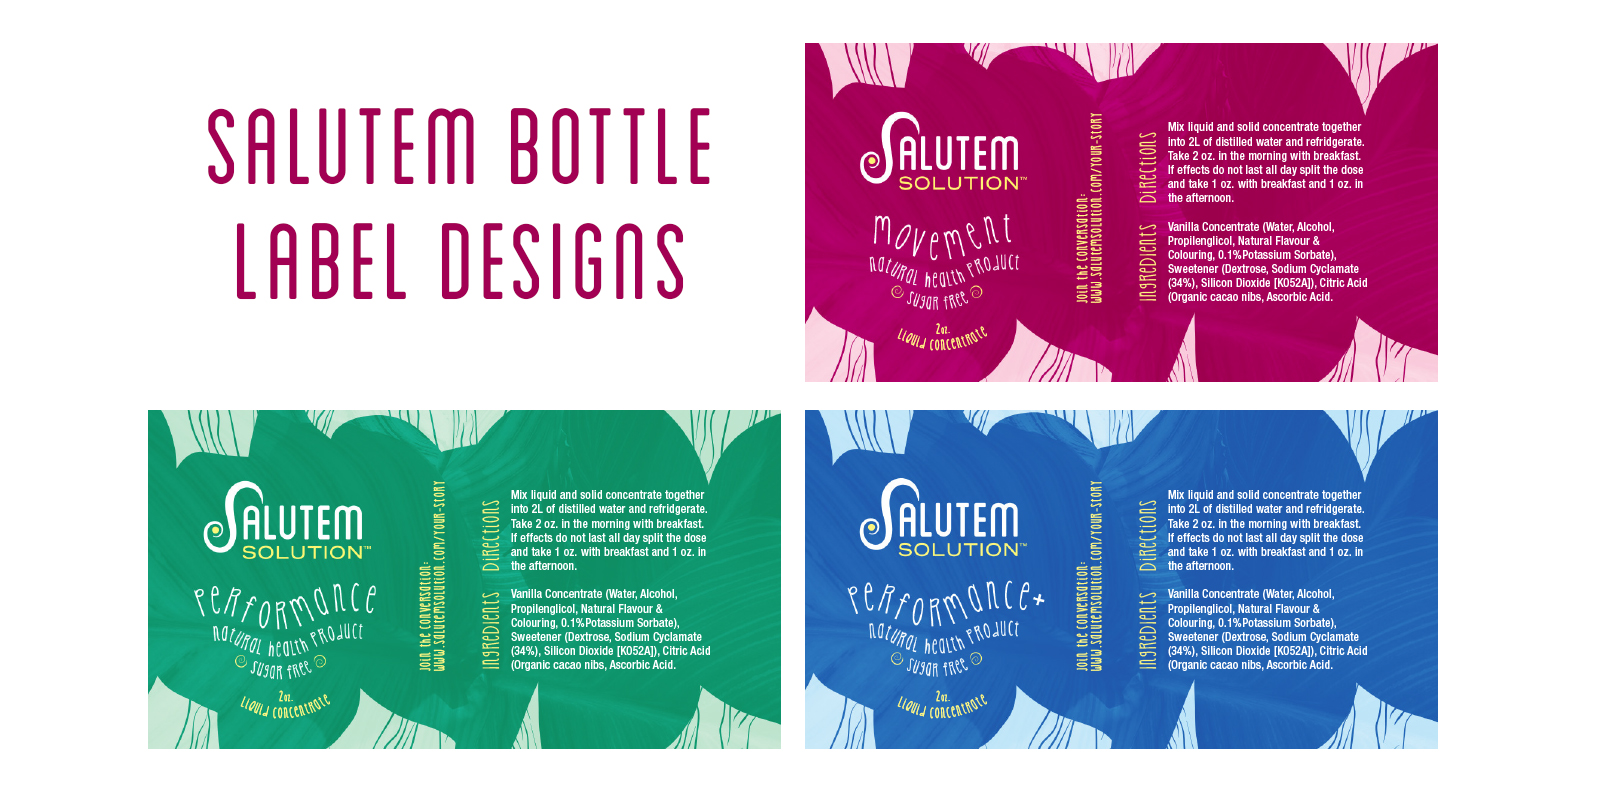 Salutem bottle labels